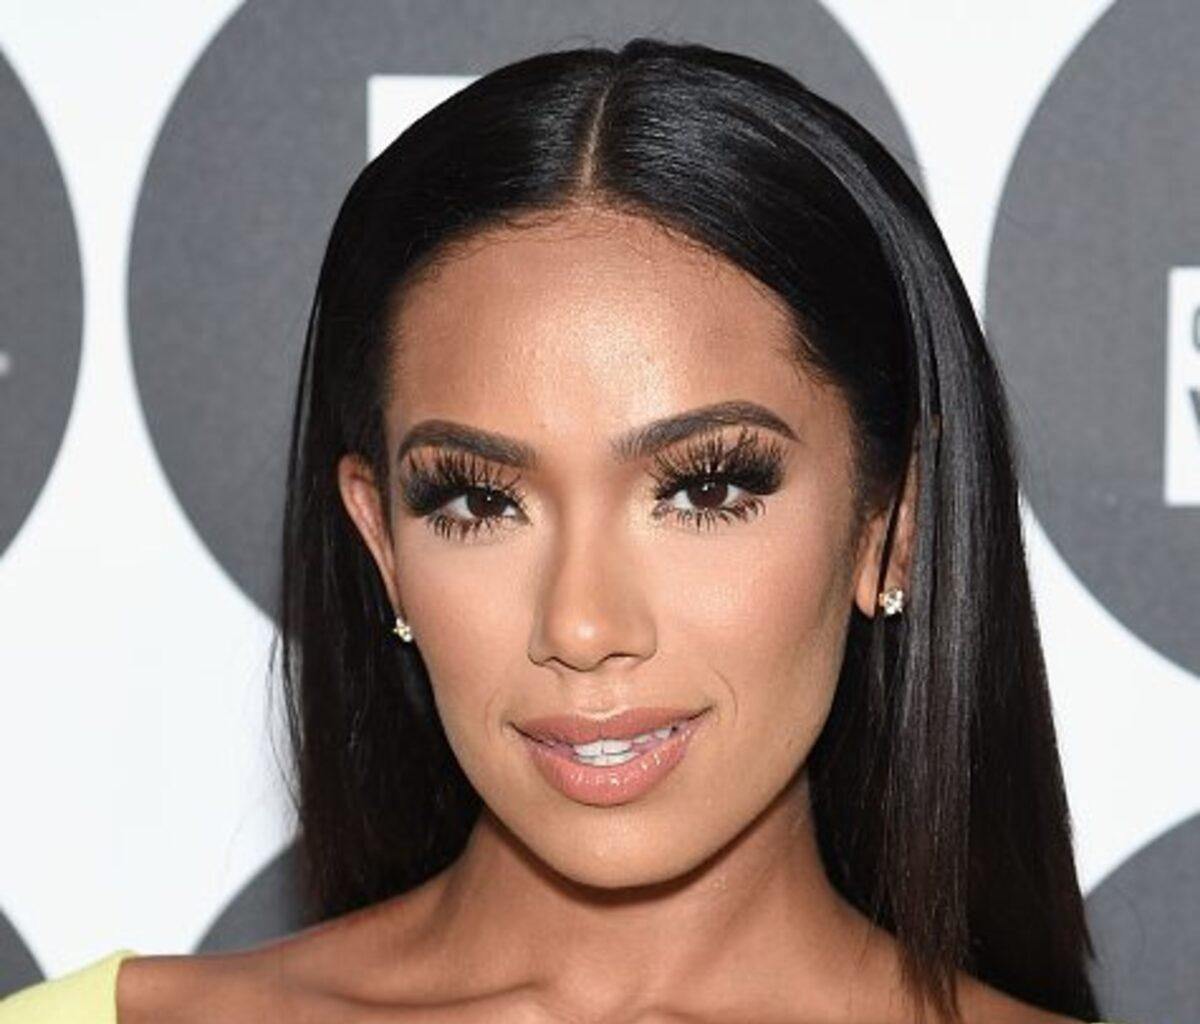 Erica Mena Sets Fans On Fire With This Position: 'So You Just Single And Fine AF'